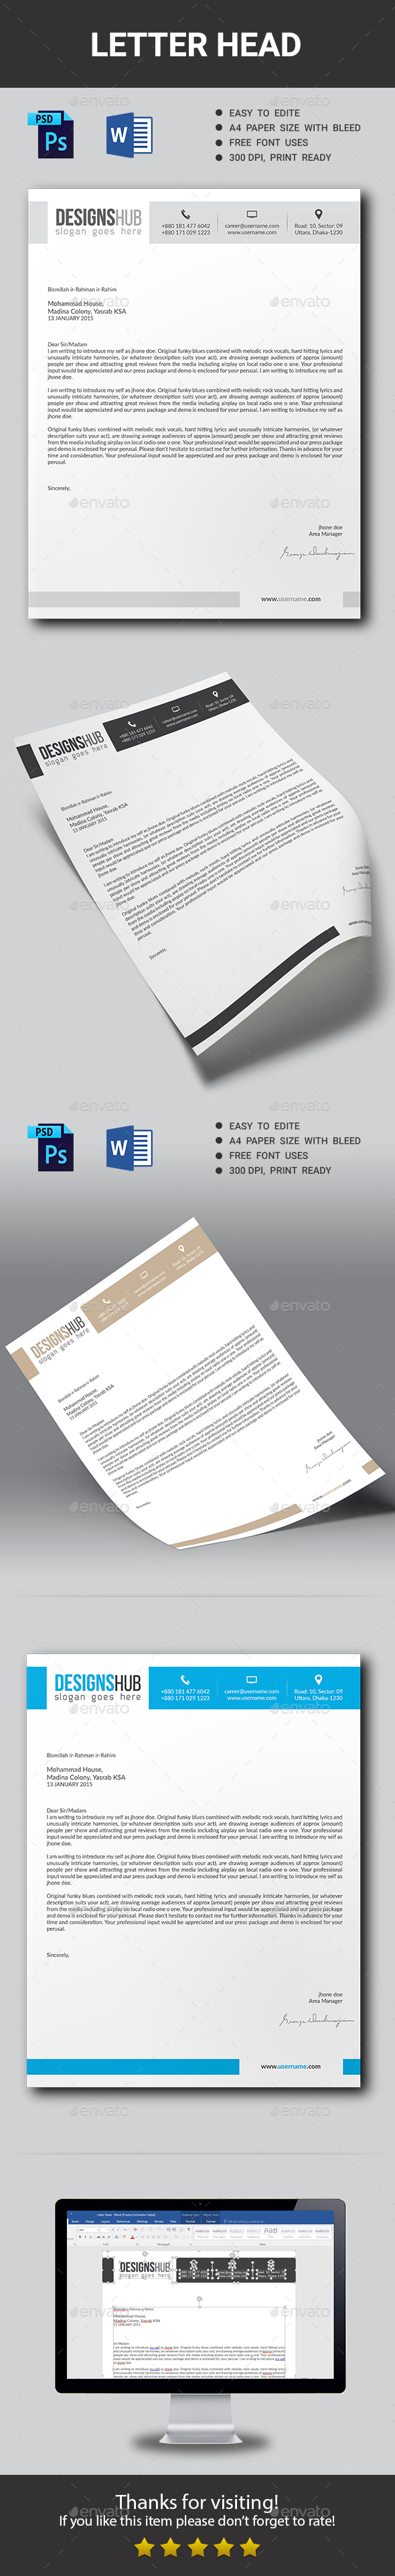 Corporate Letter Head - Stationery Print Templates